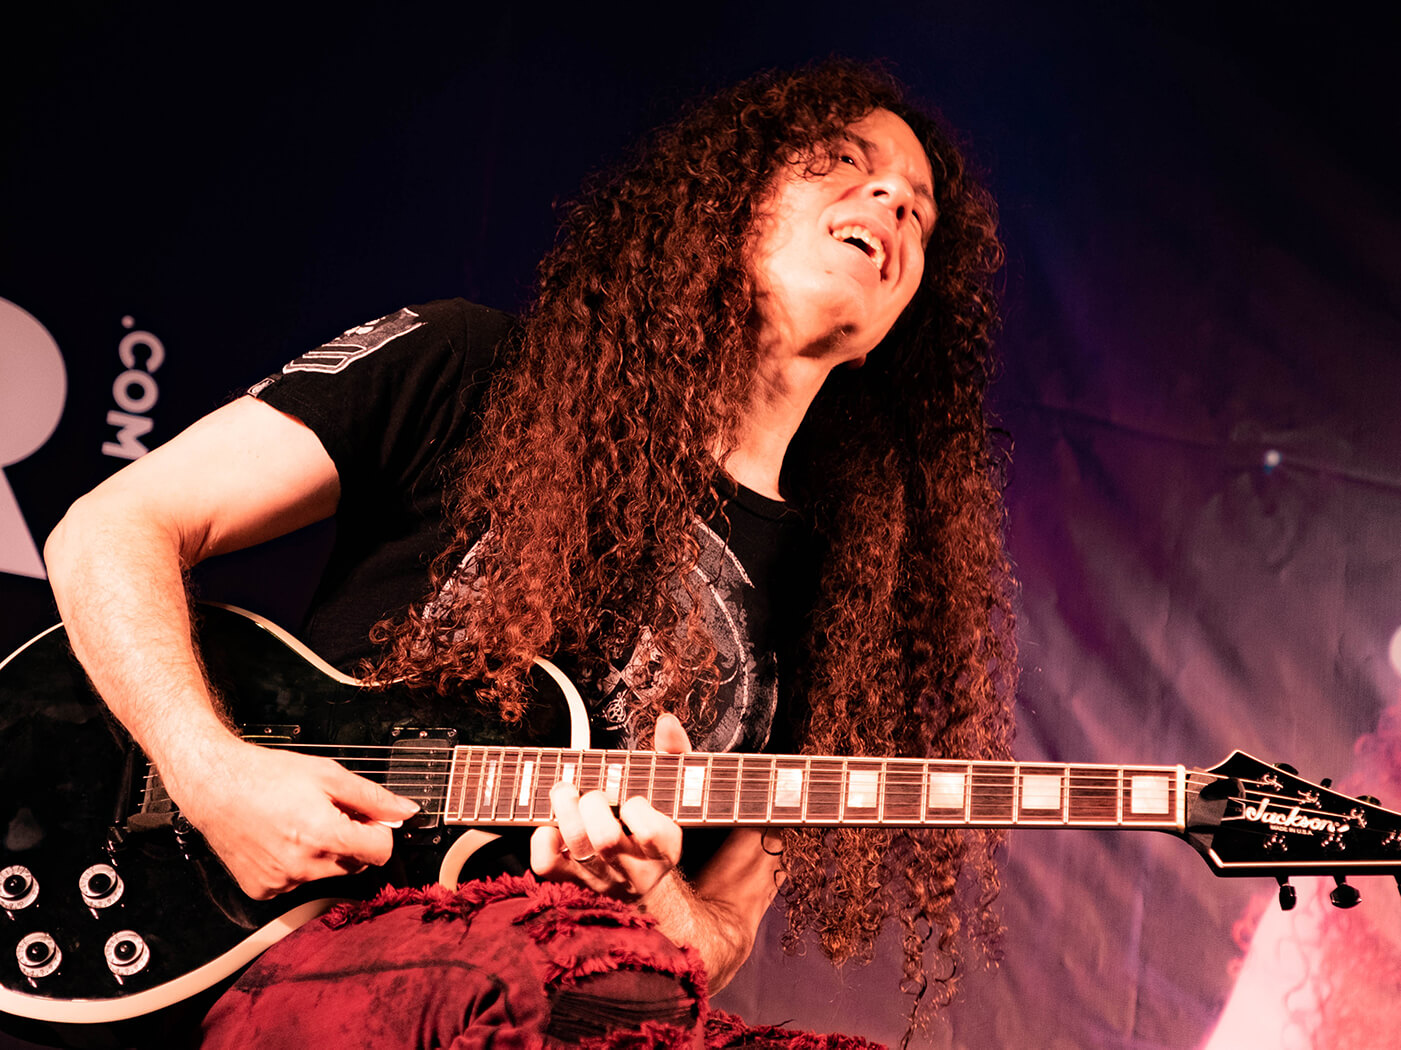 In Pictures: Marty Friedman wows at our first international masterclass